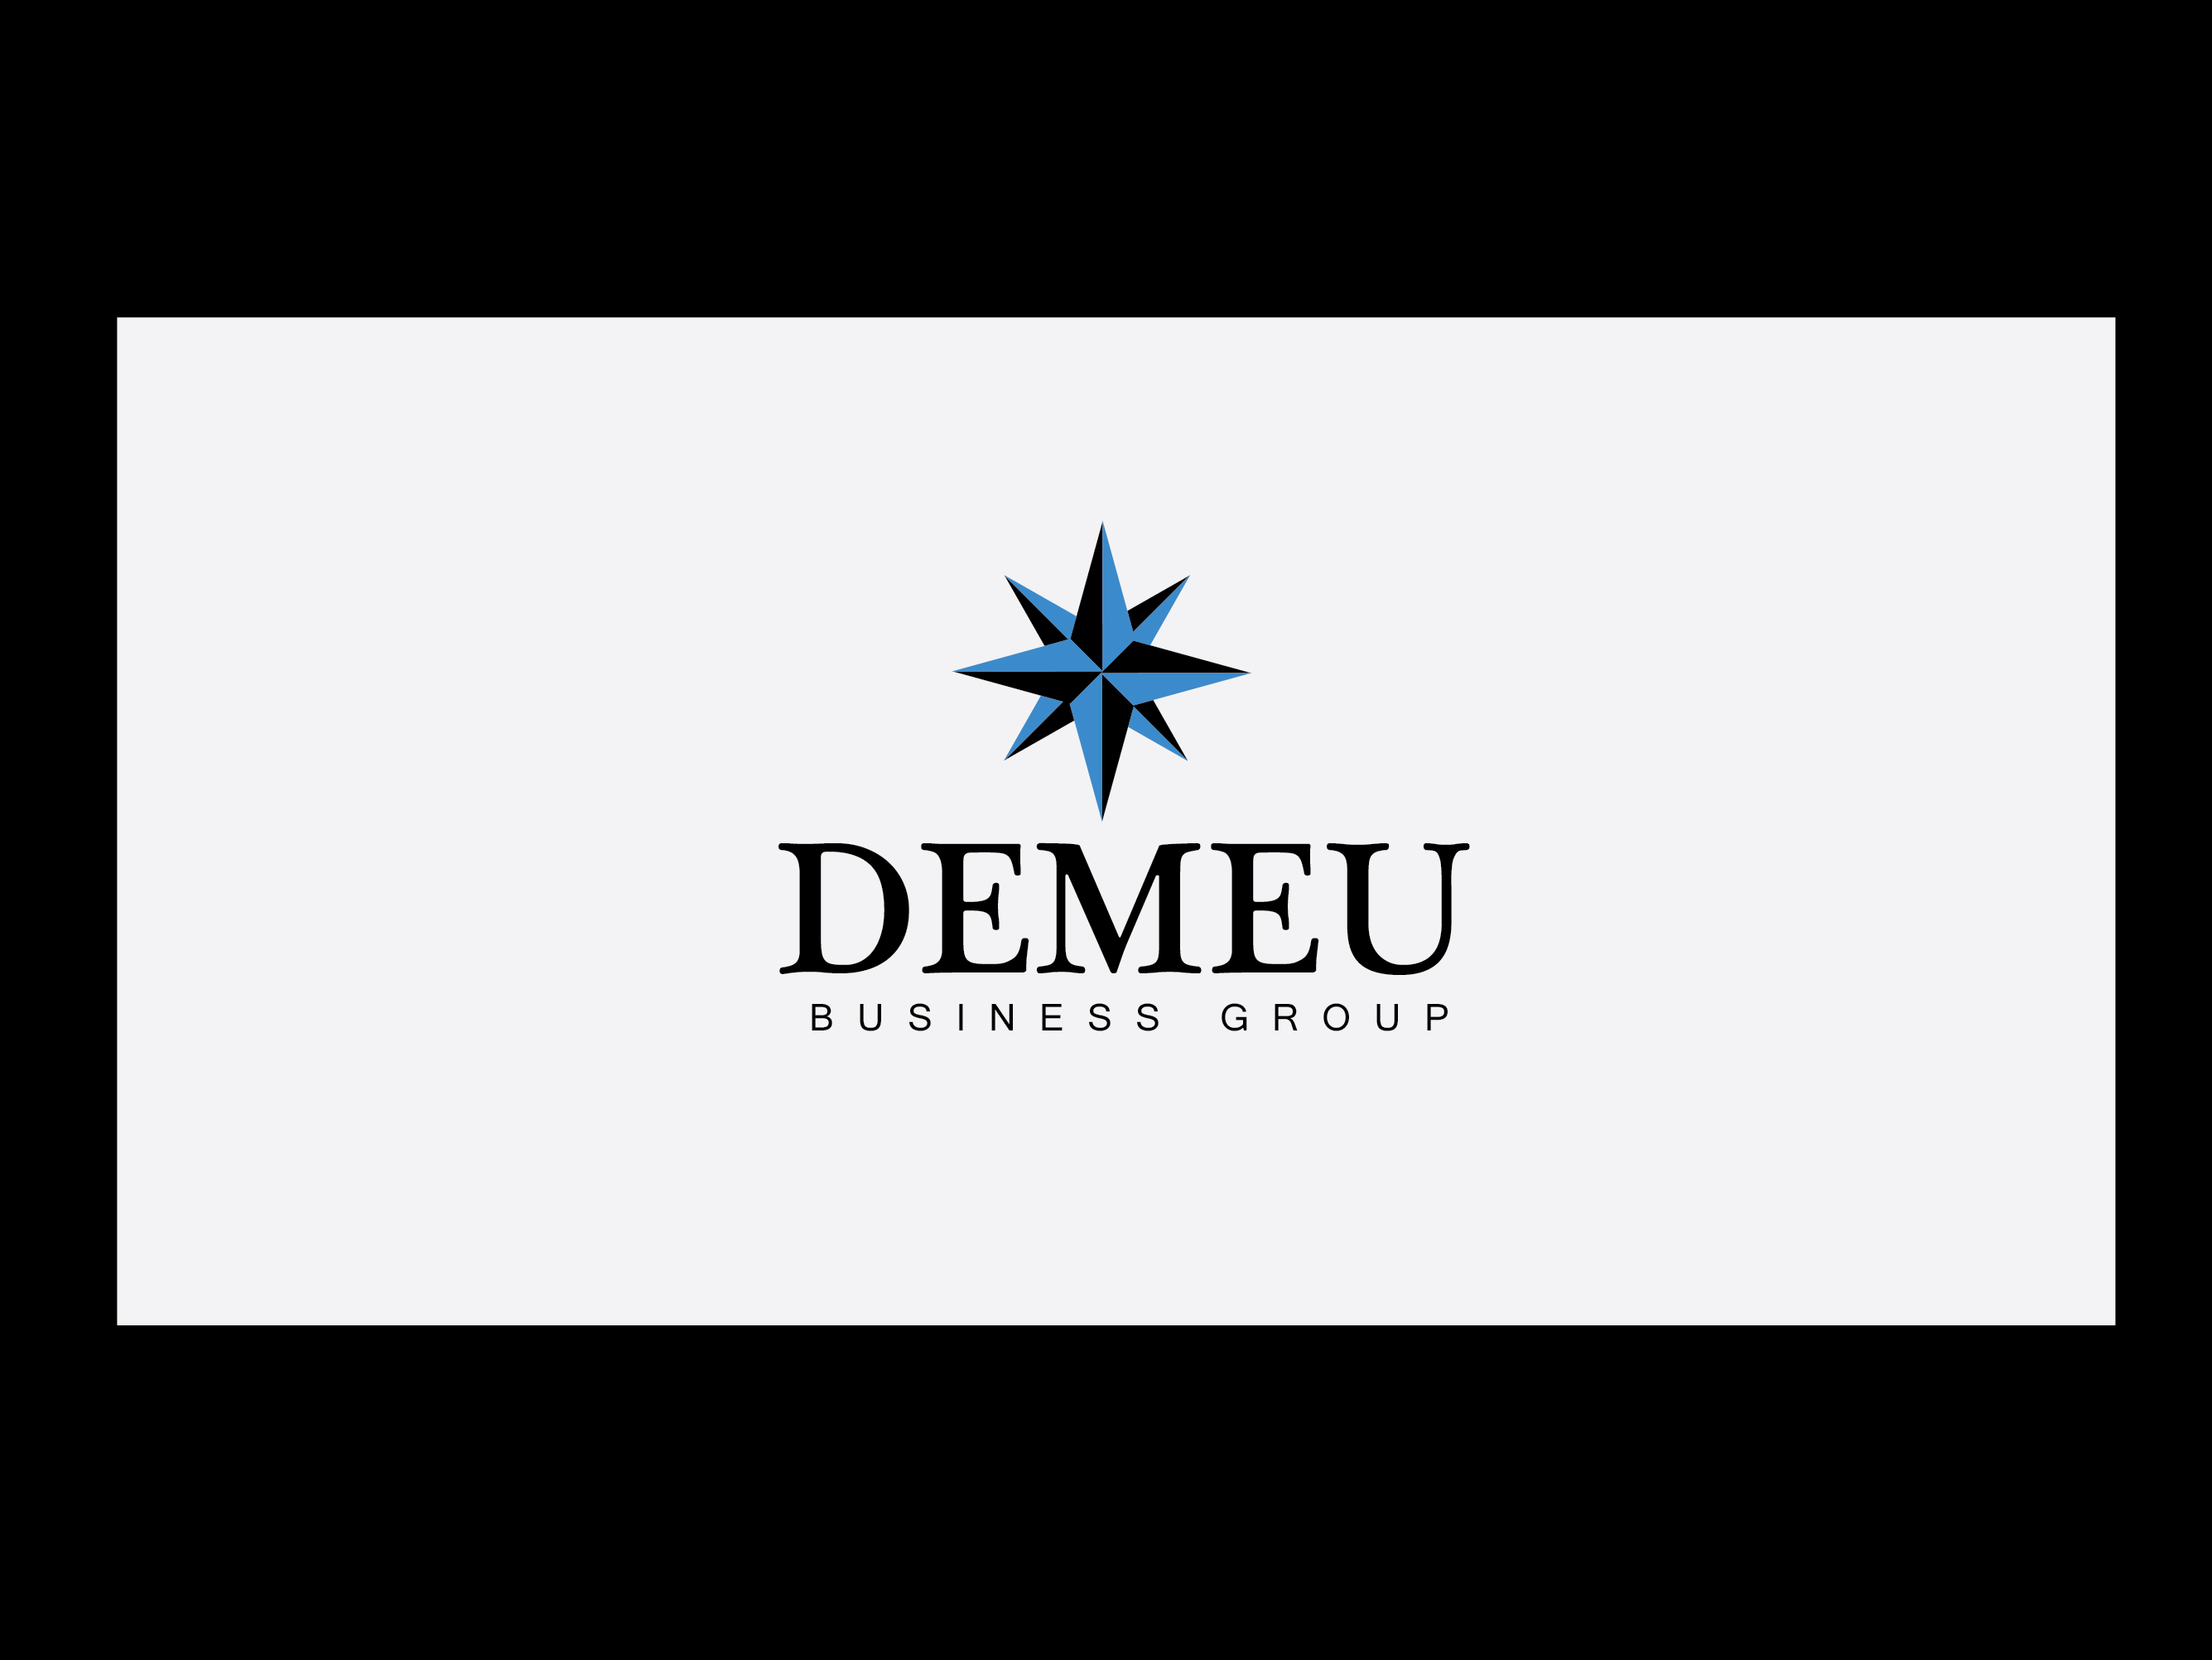 Logo Design by Kyaw Min Khaing - Entry No. 155 in the Logo Design Contest Captivating Logo Design for DEMEU Business Group.